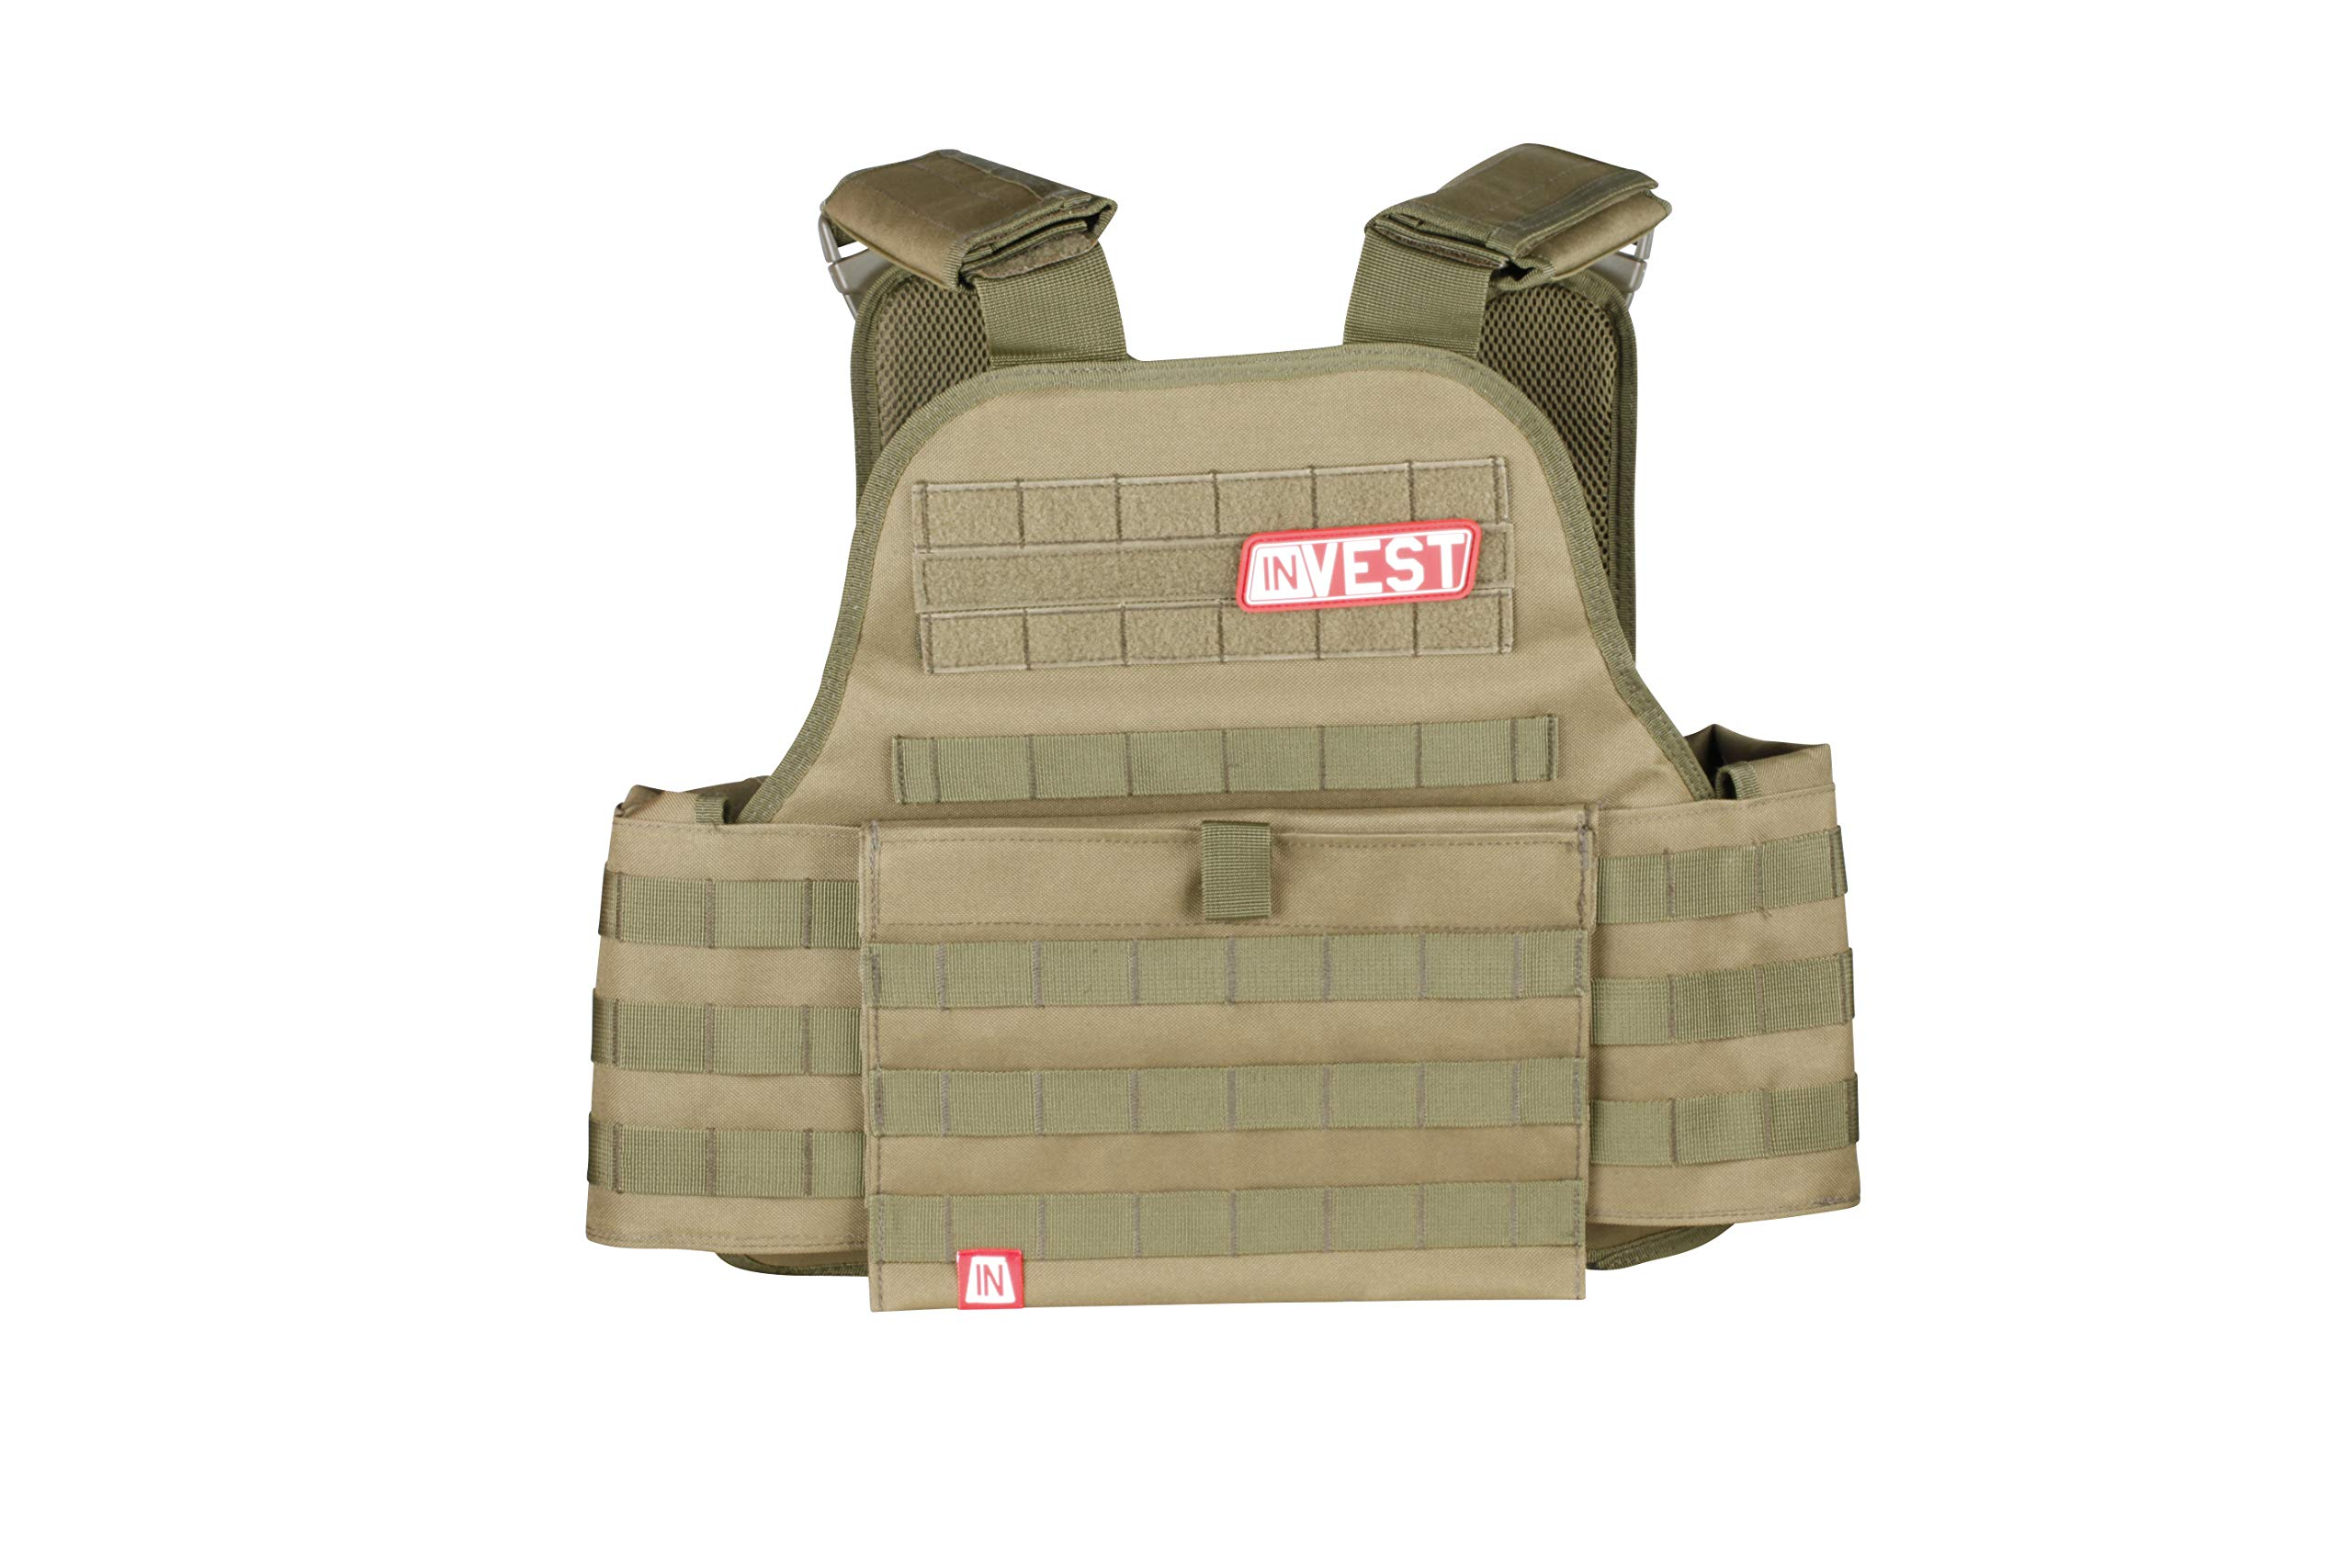 Invest Pro Weight Vest, 20 lbs. (Ranger Green) by Invest Fitness (Image #1)